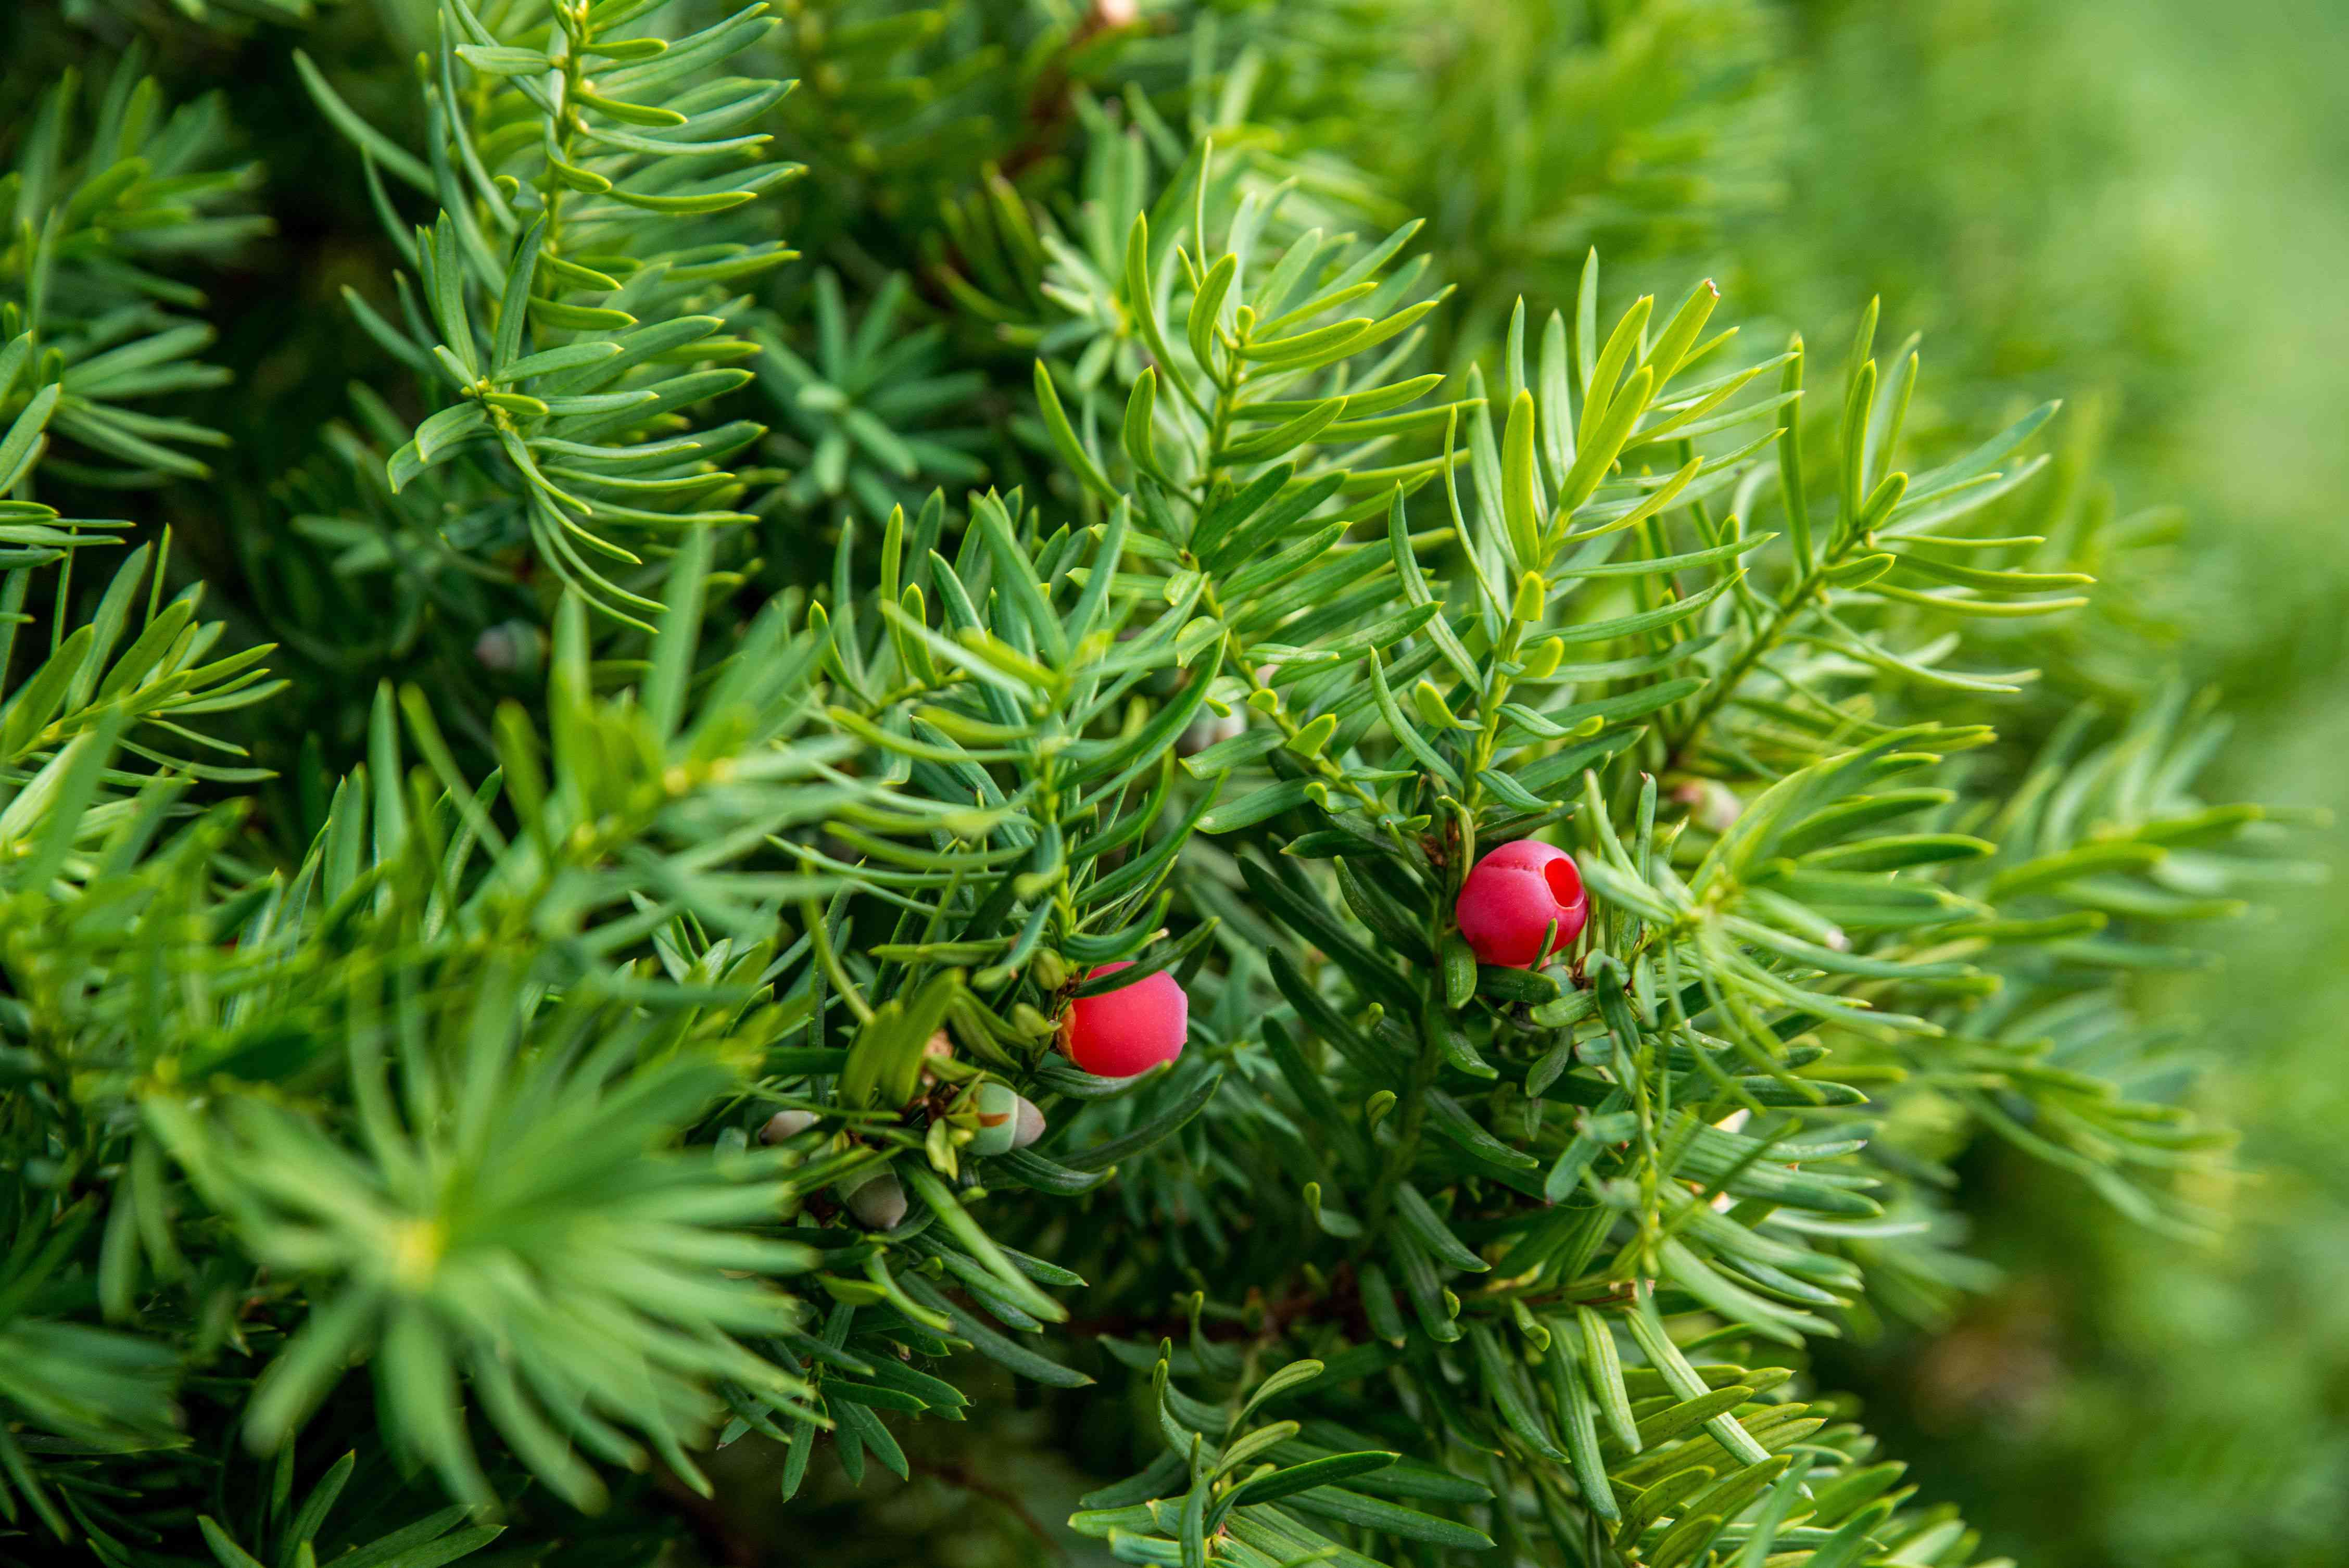 Yew bush branches with small evergreen needle-bearing leaves and small red berries closeup